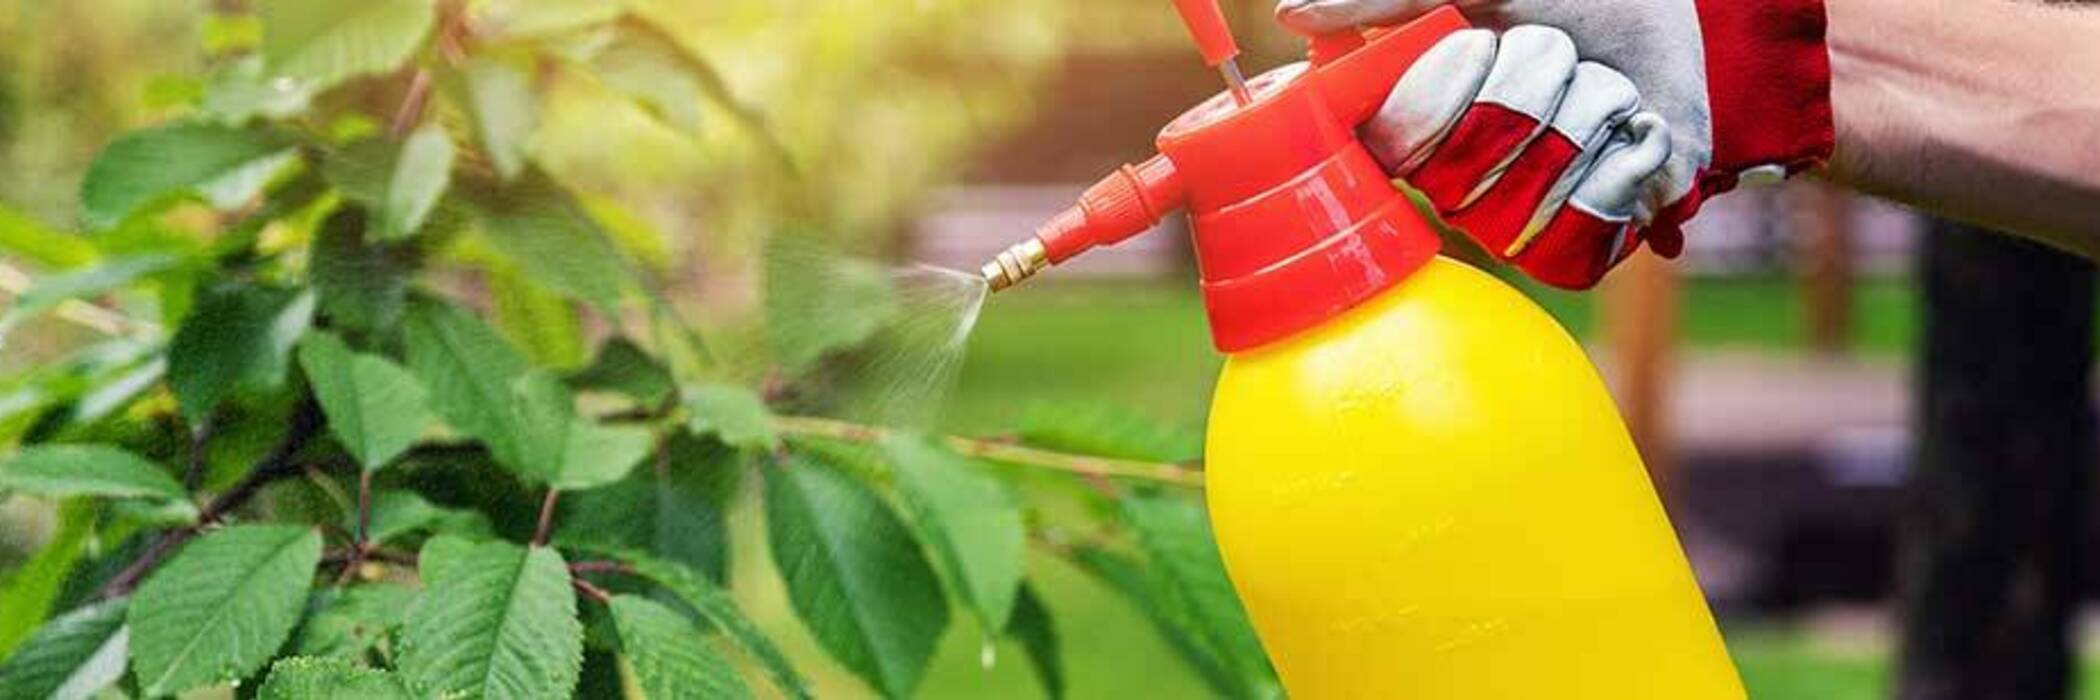 Gardener spraying cherry tree with insecticide.